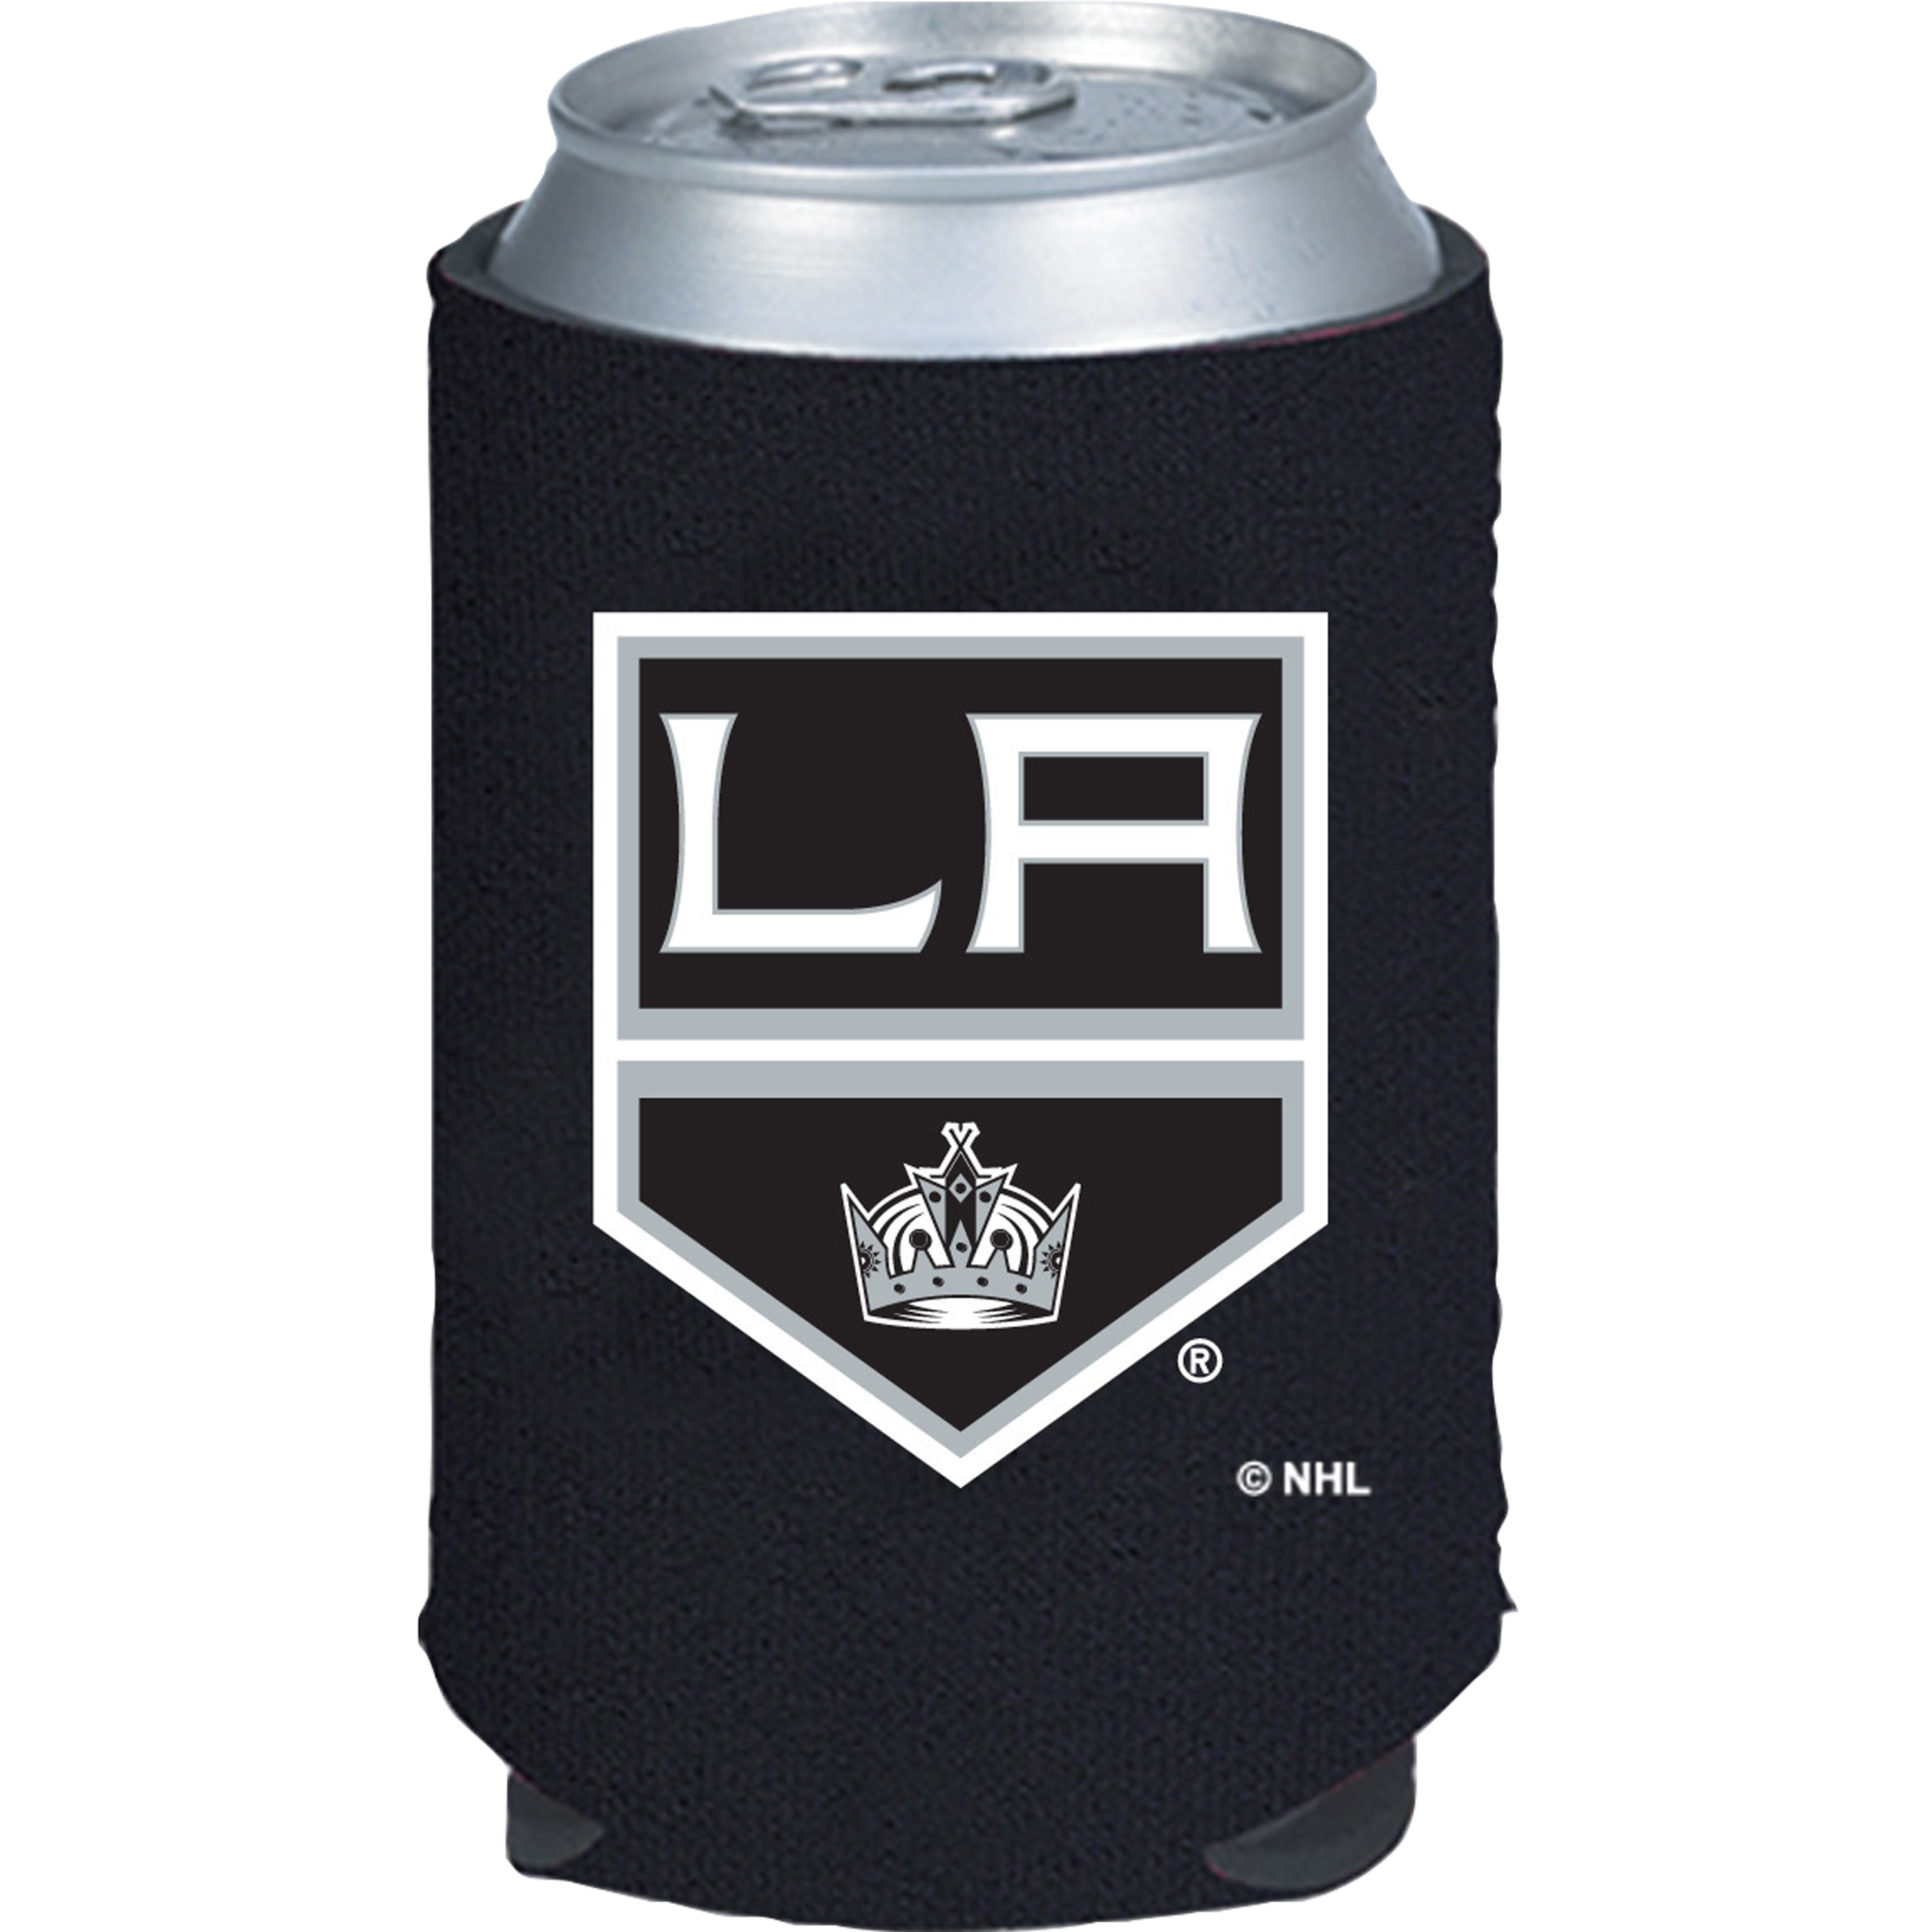 Los Angeles Kings - Kolder Kaddy